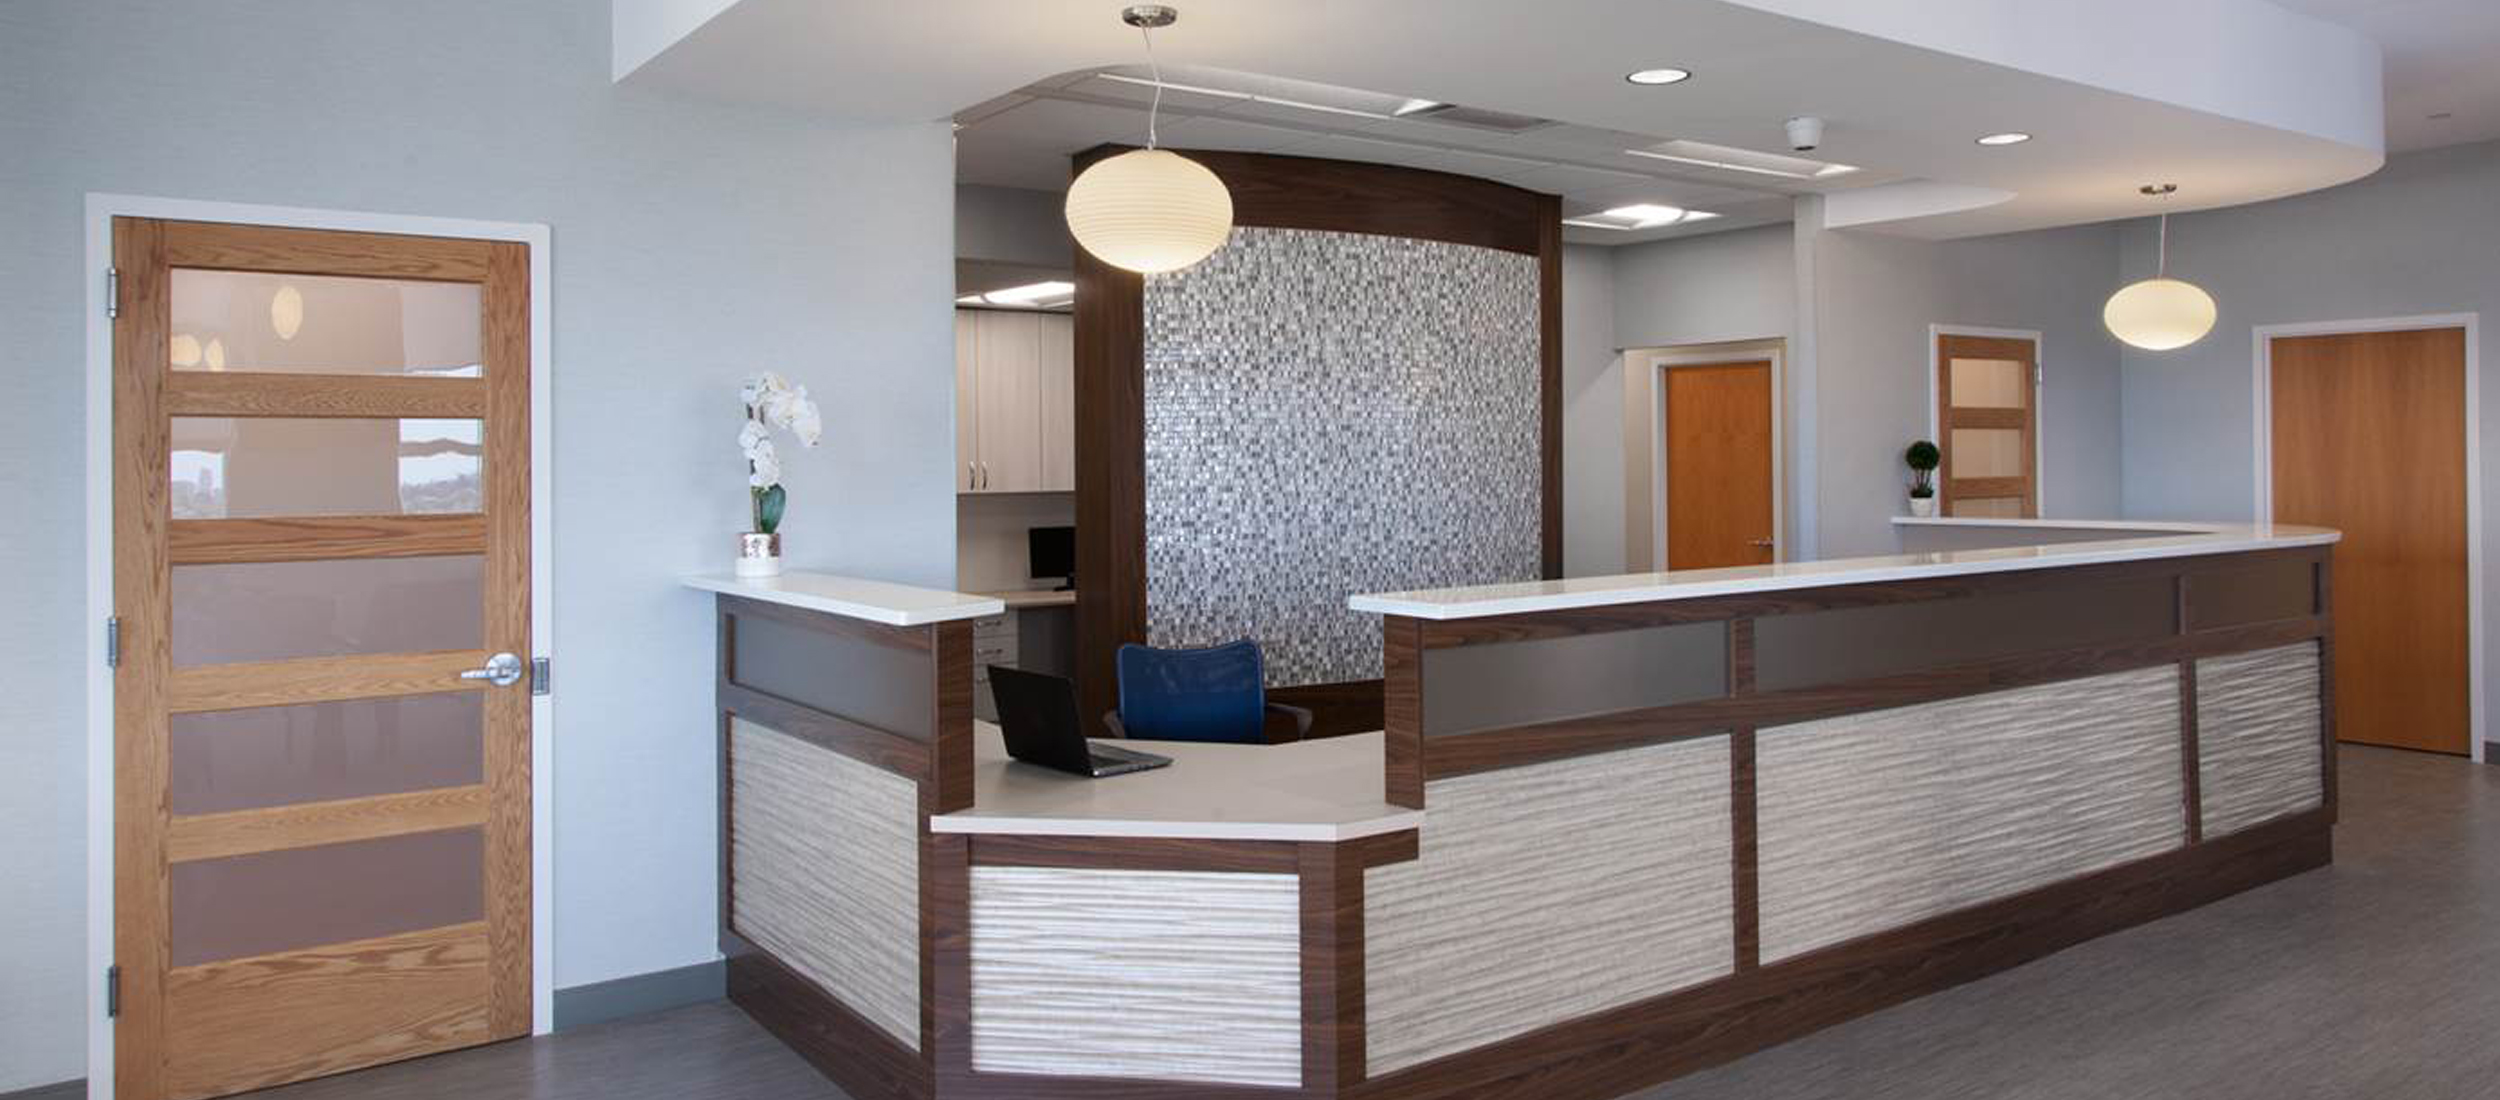 Heres A Clean And Functional Office Space Designed By In Site Interior Design